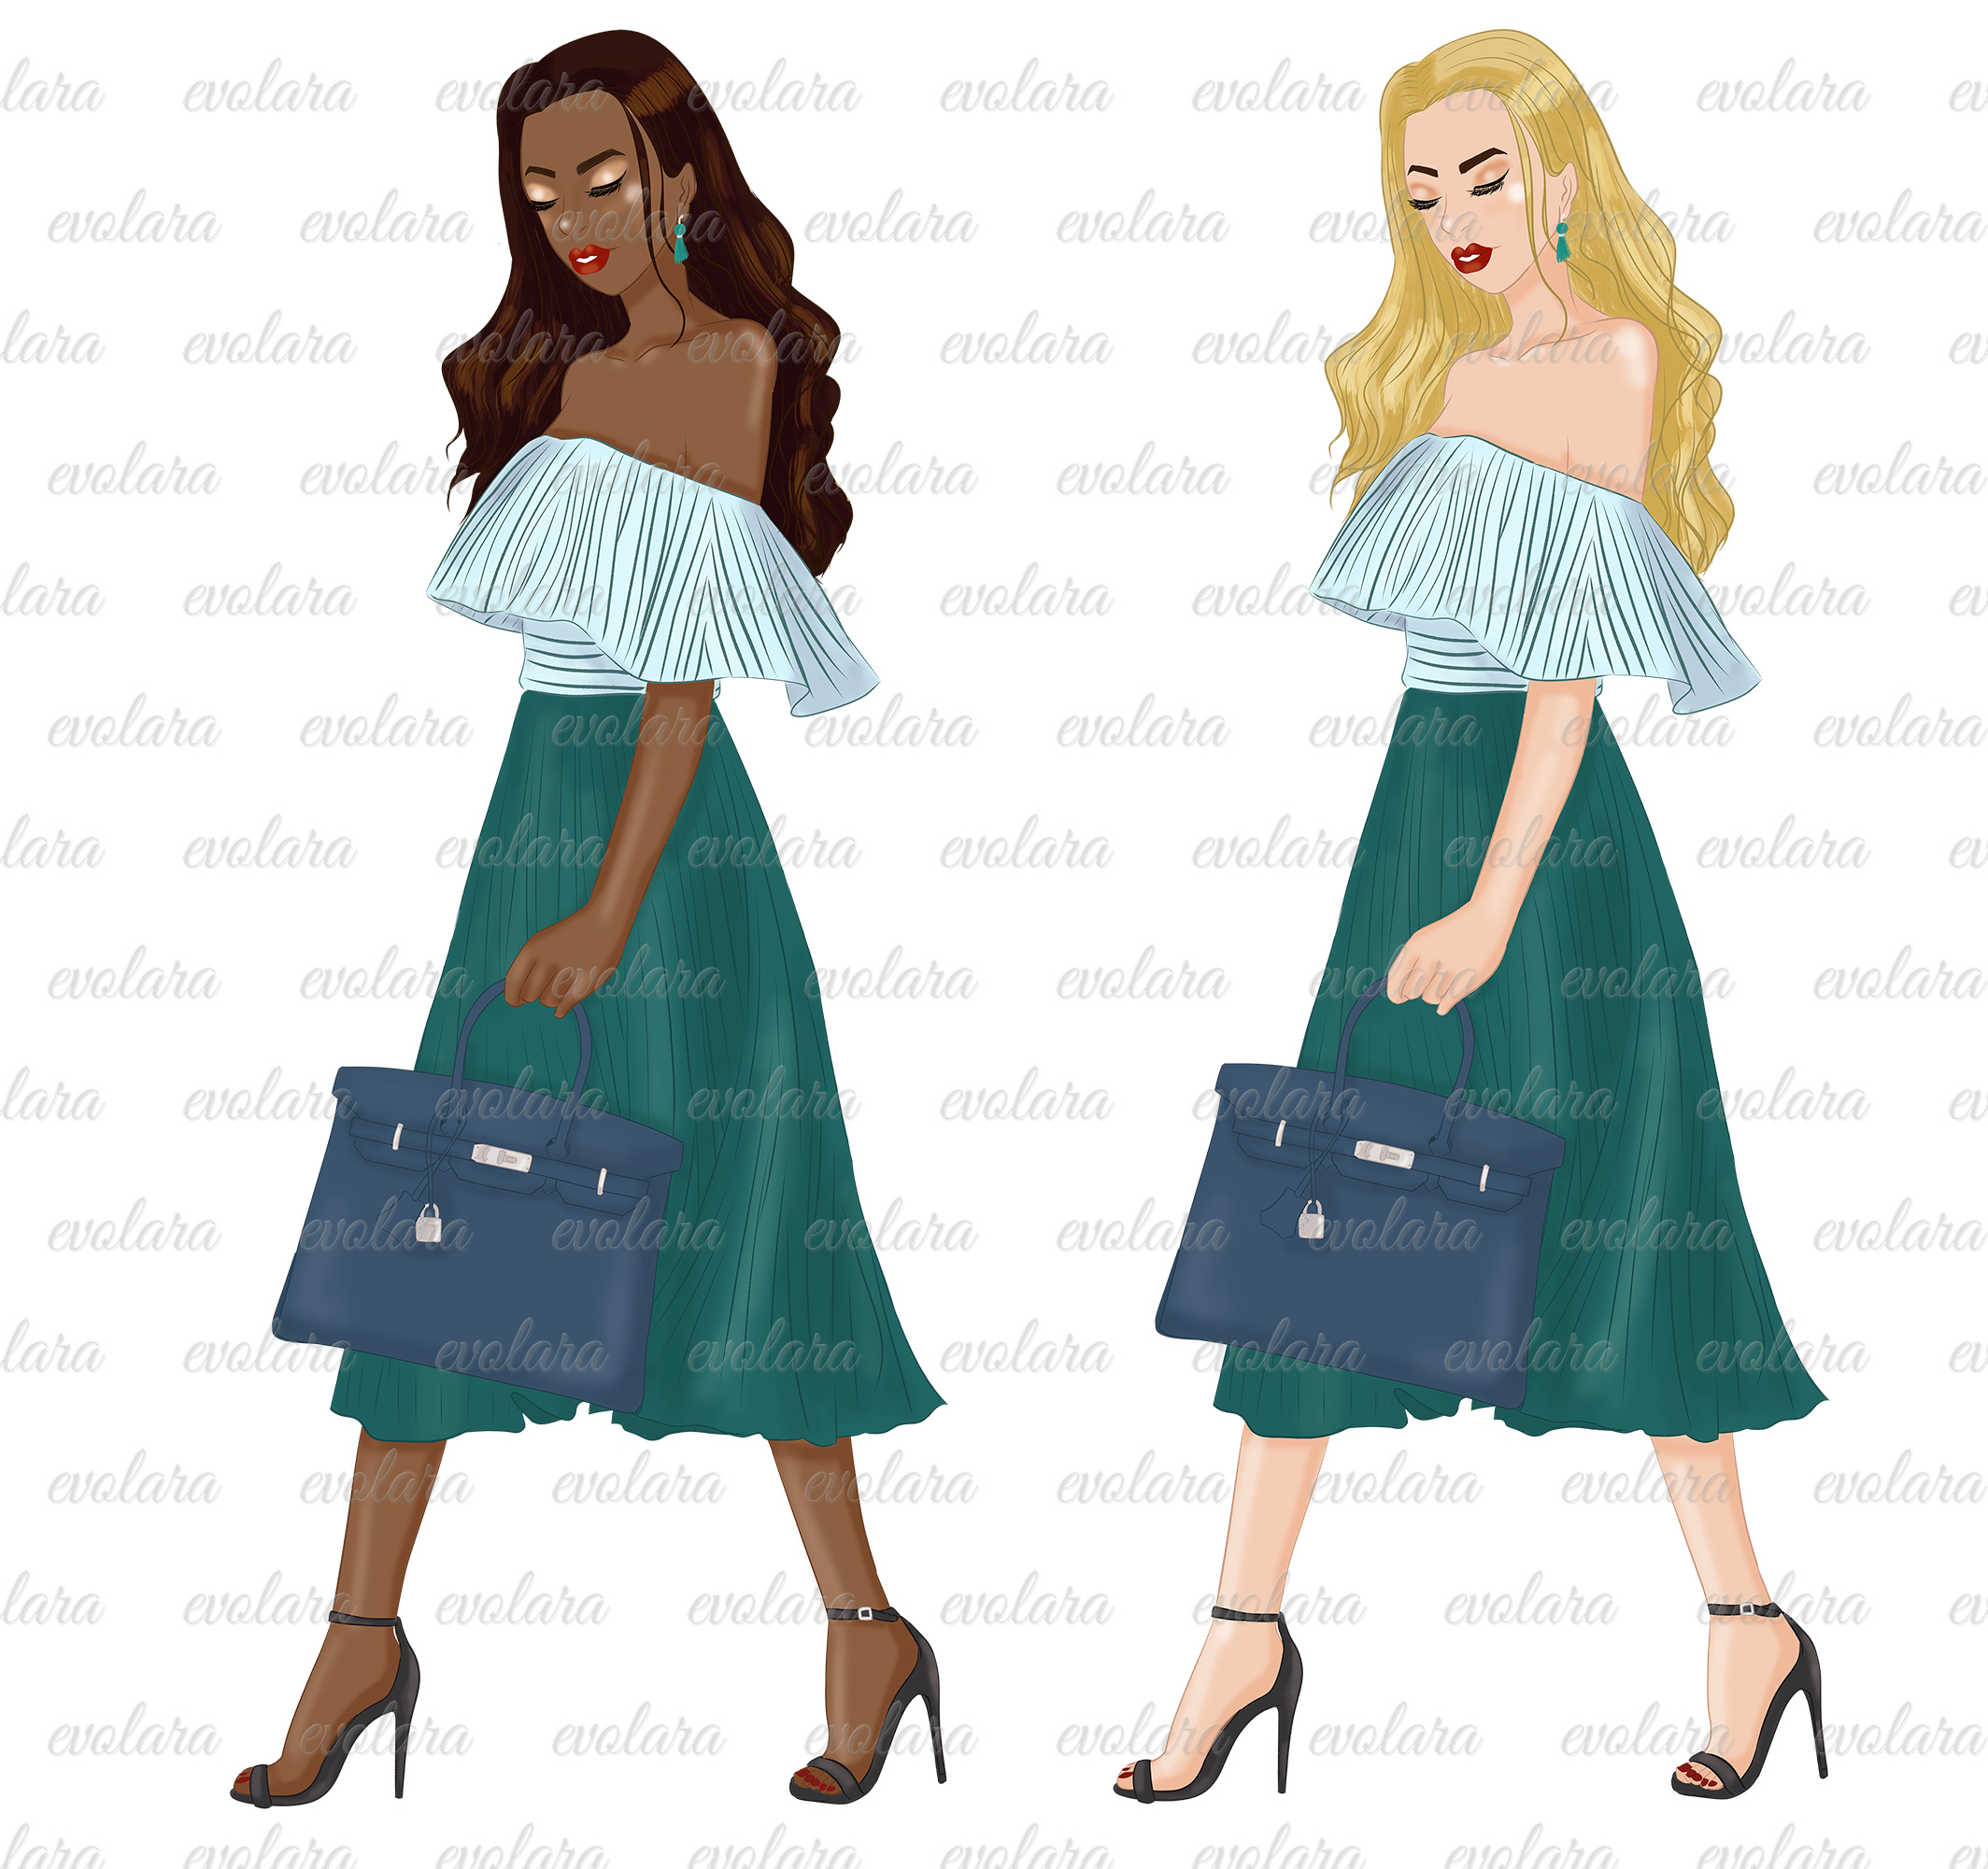 Fashion girl clipart girl boss clipart fashion illustrations example image 3